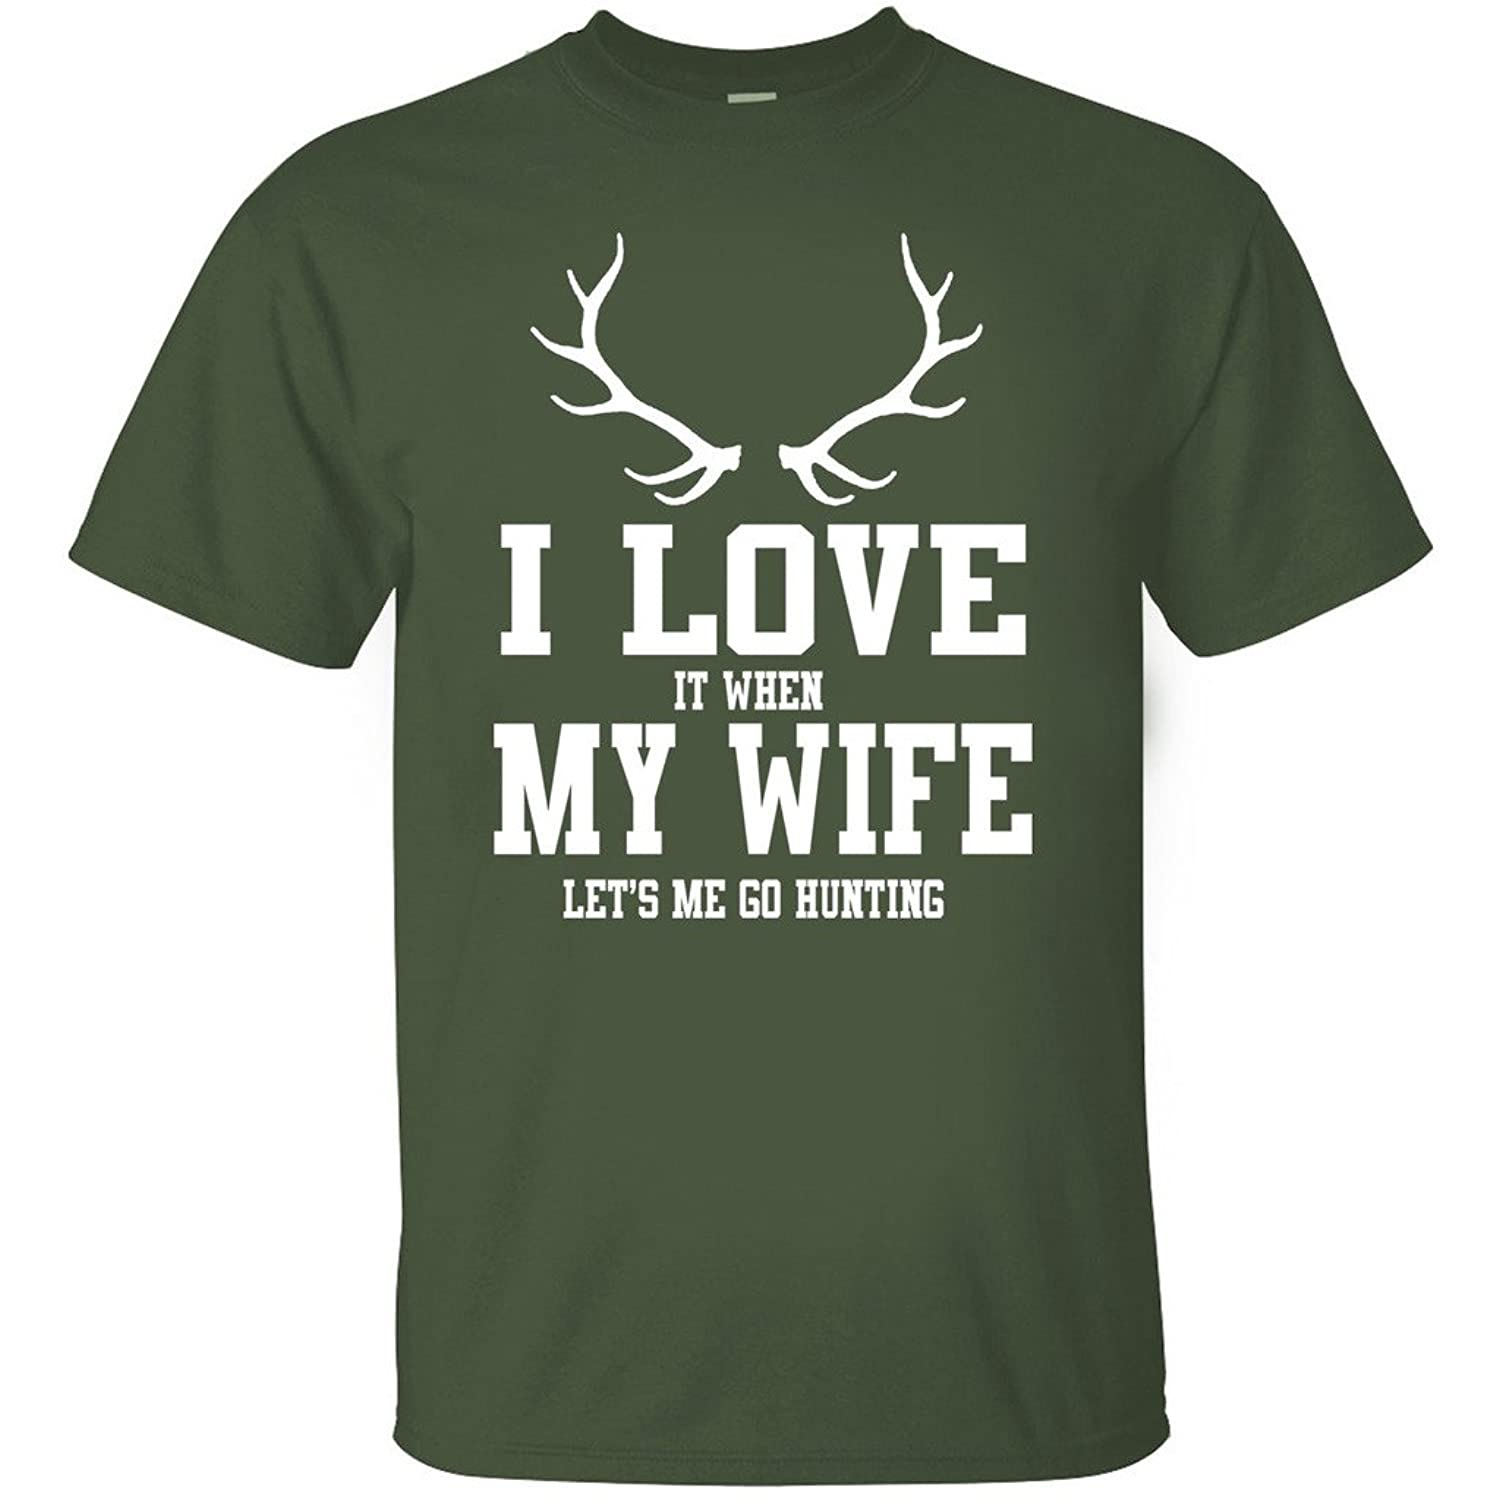 I Love It When My Wife Let's Me Go Hunting Crew Neck T-shirt Military Green